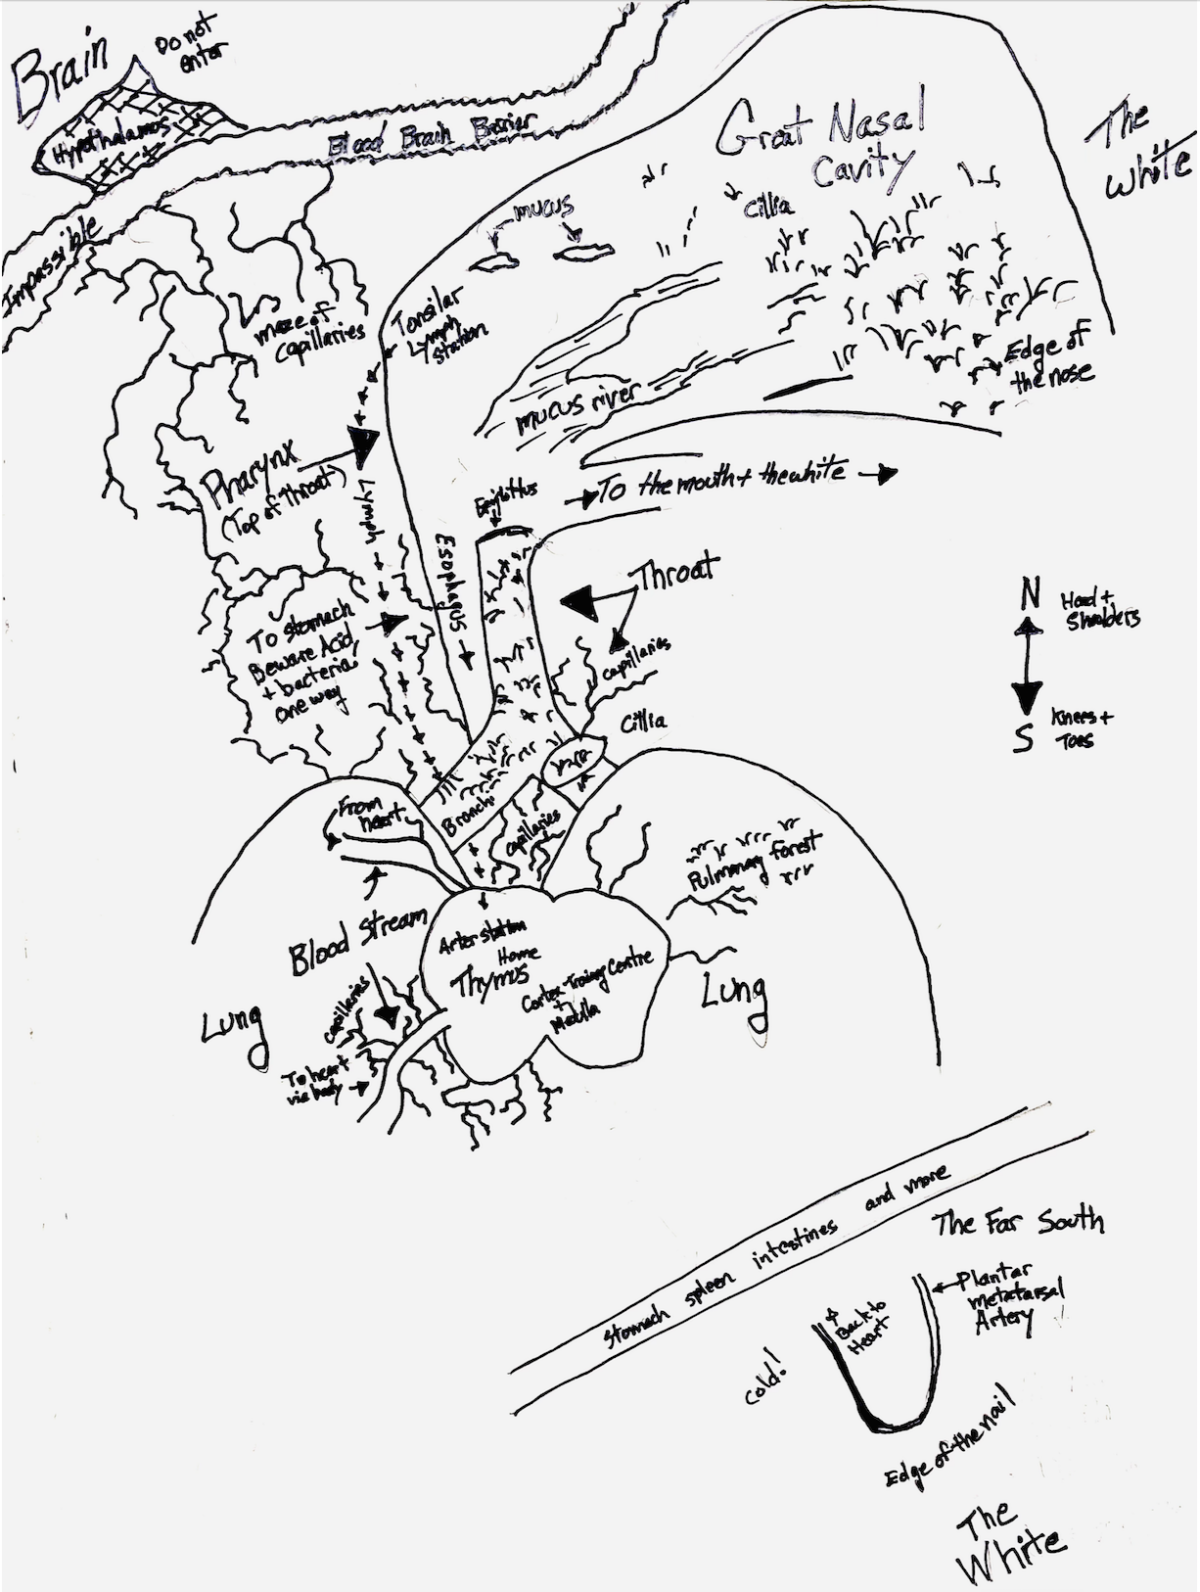 A hand drawn map of the inside of Flip